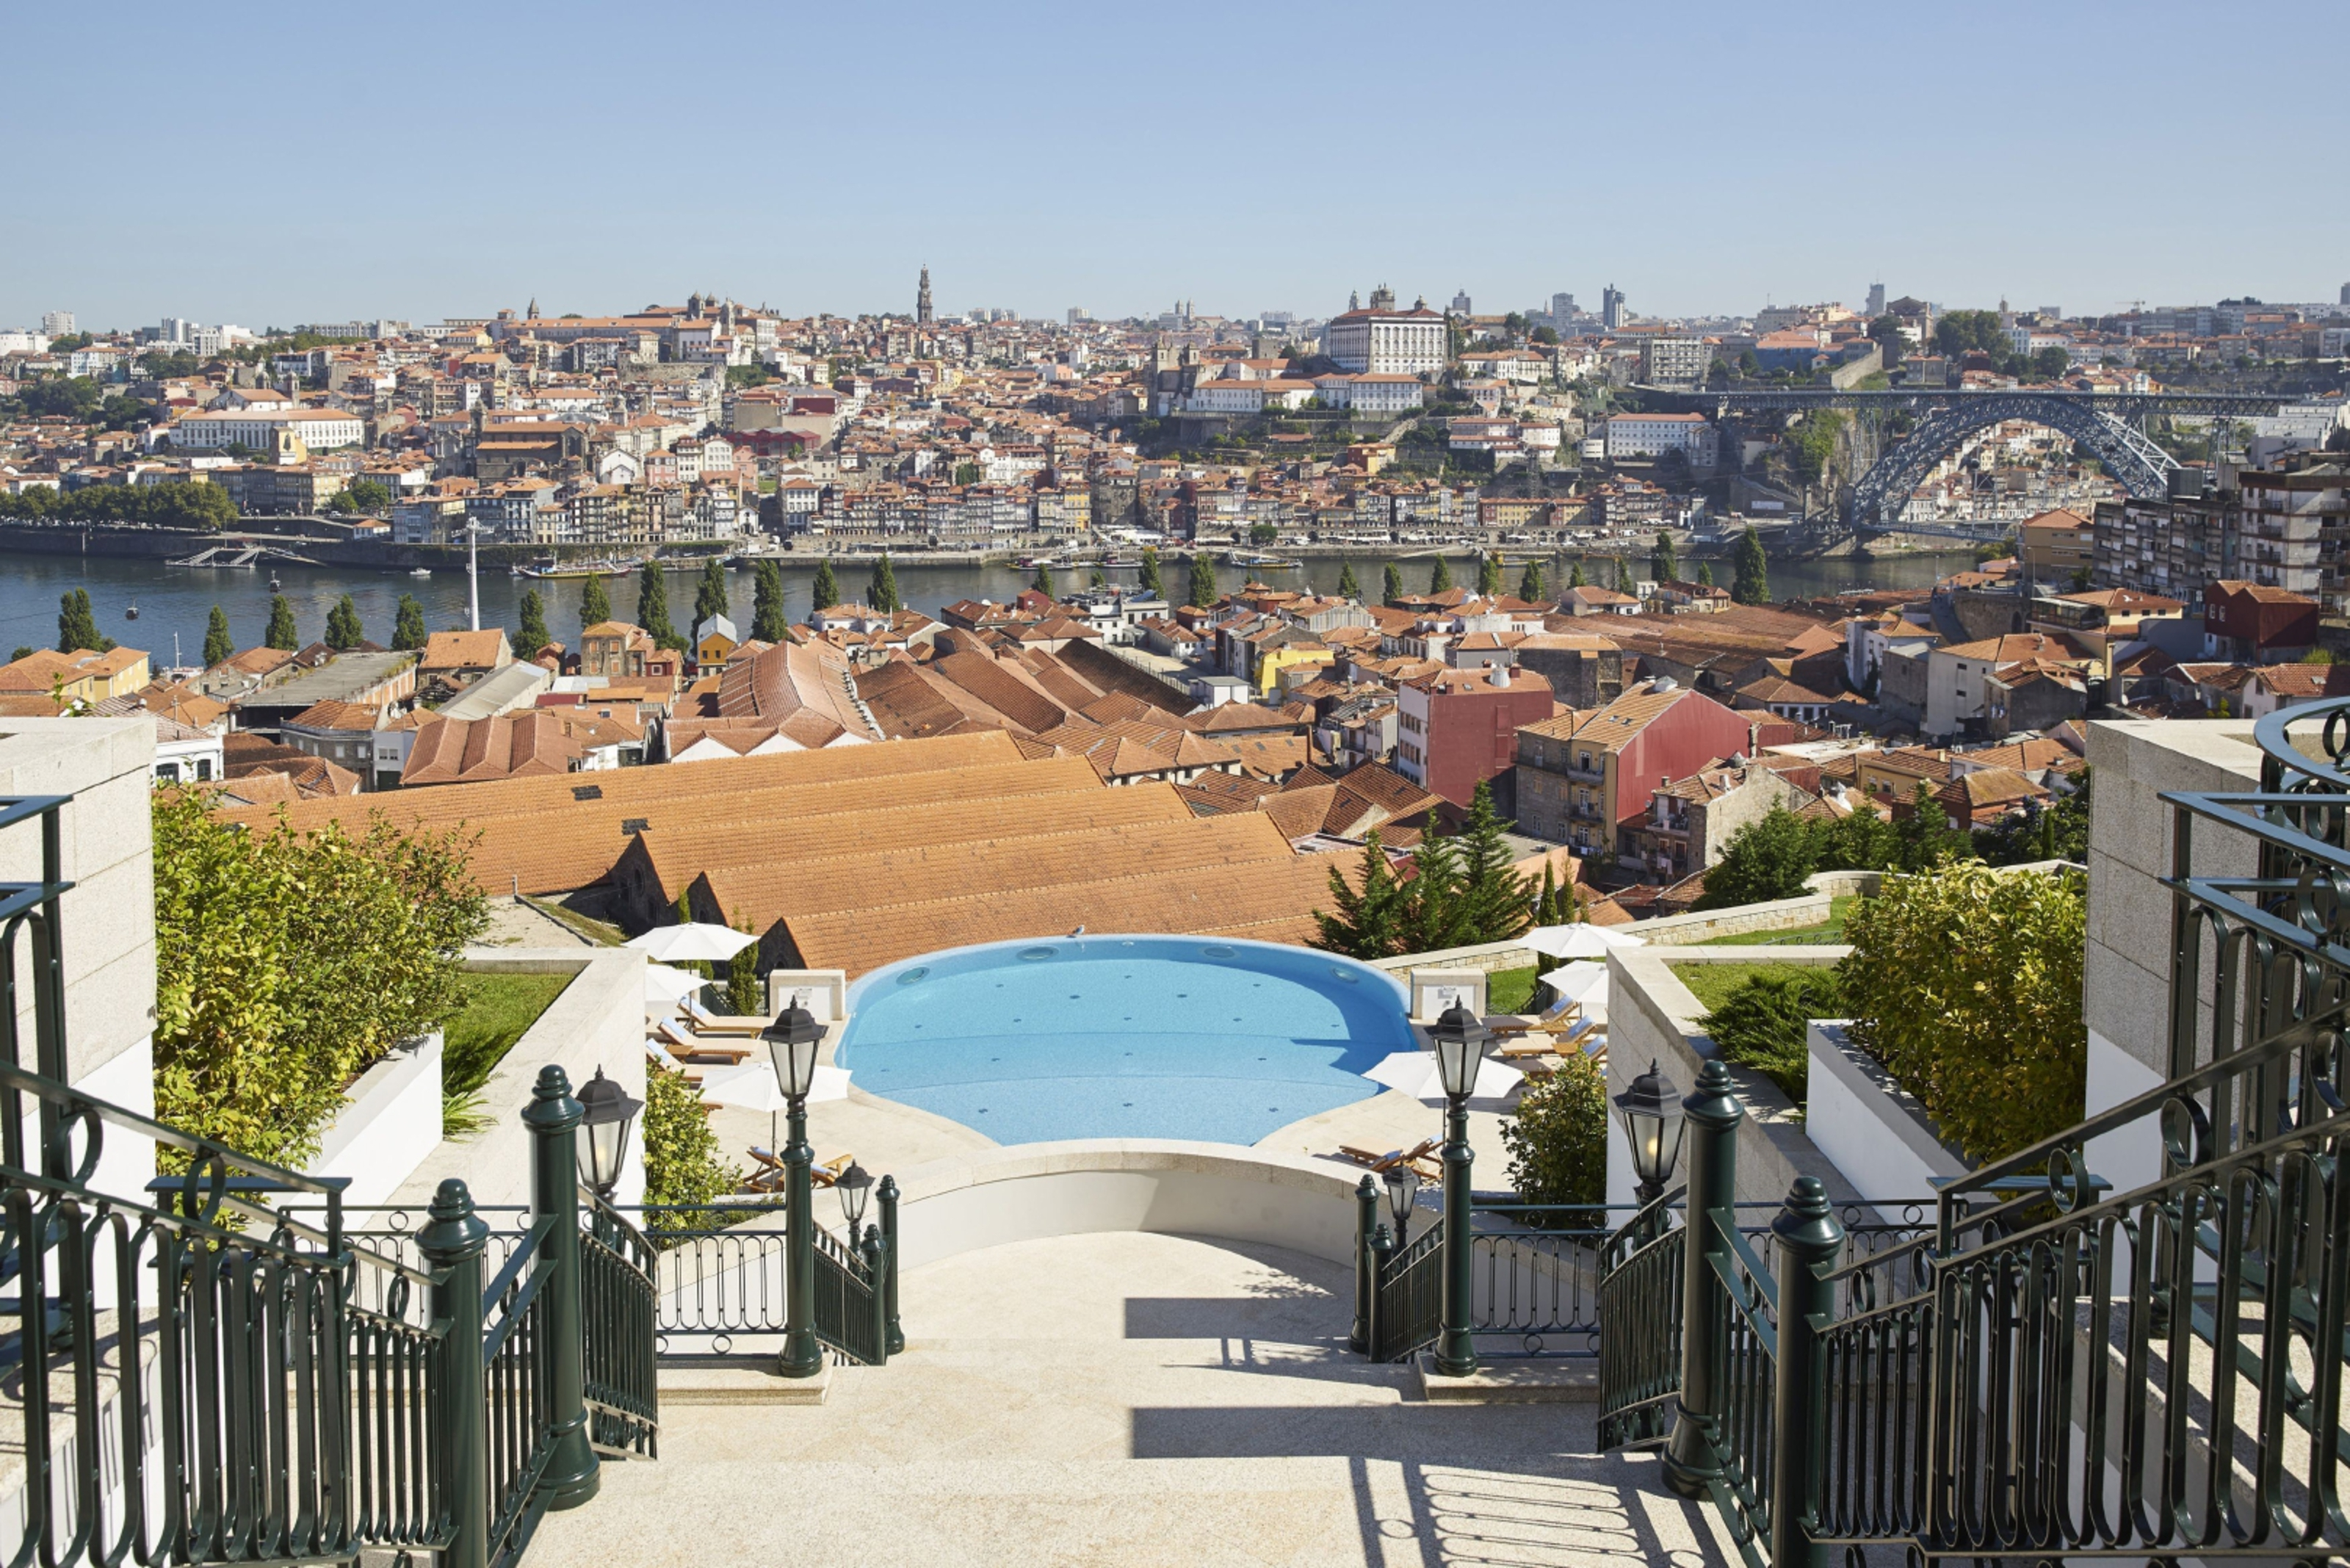 The view over Porto and decanter-shaped swimming pool from The Yeatman terrace.